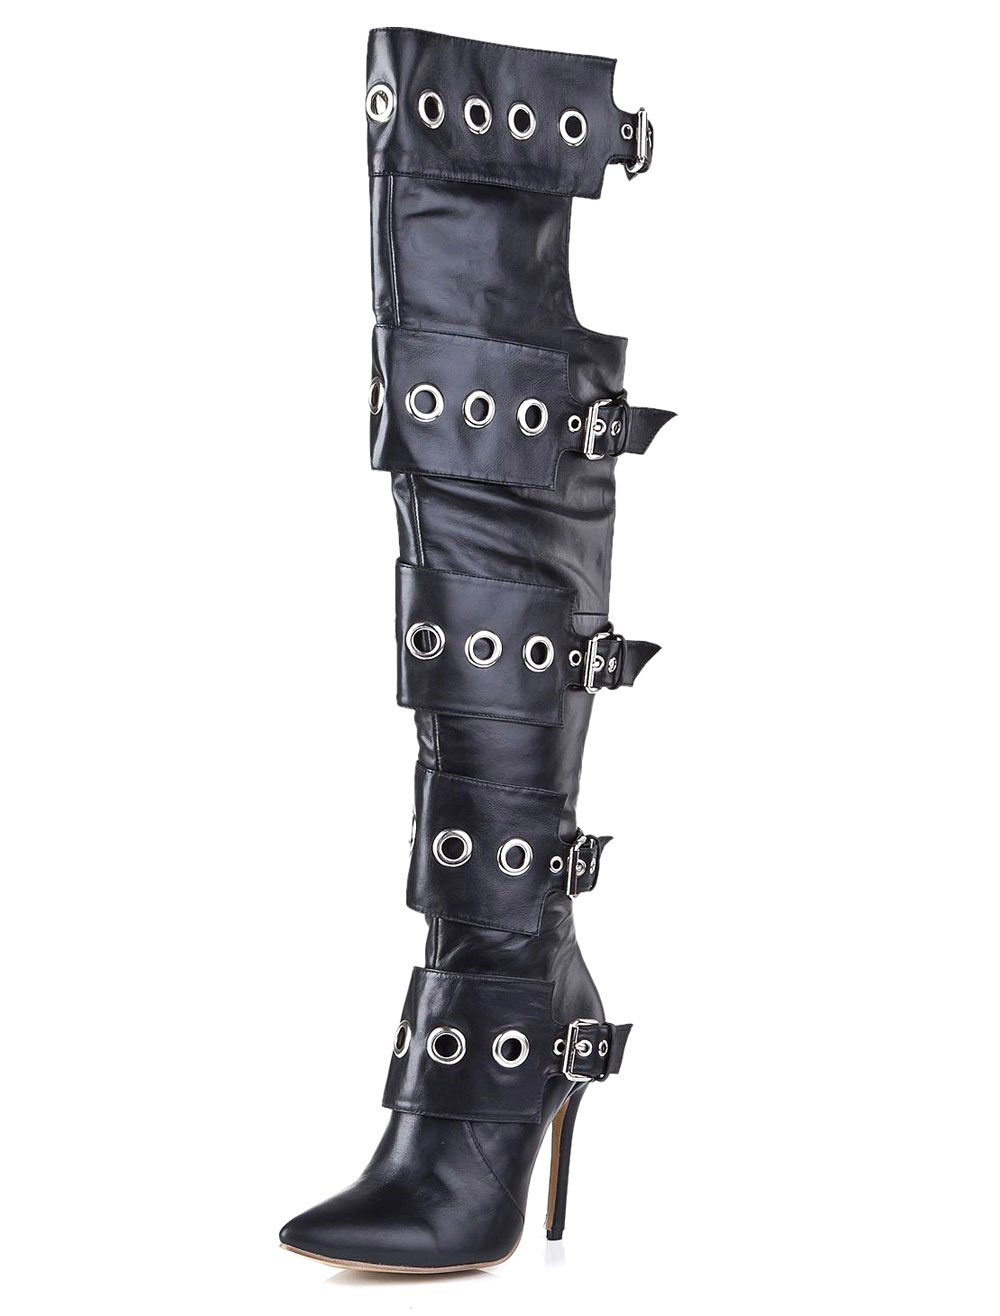 Thigh High Boots Black Pointed Toe Cowhide Buckled Over Knee Boots